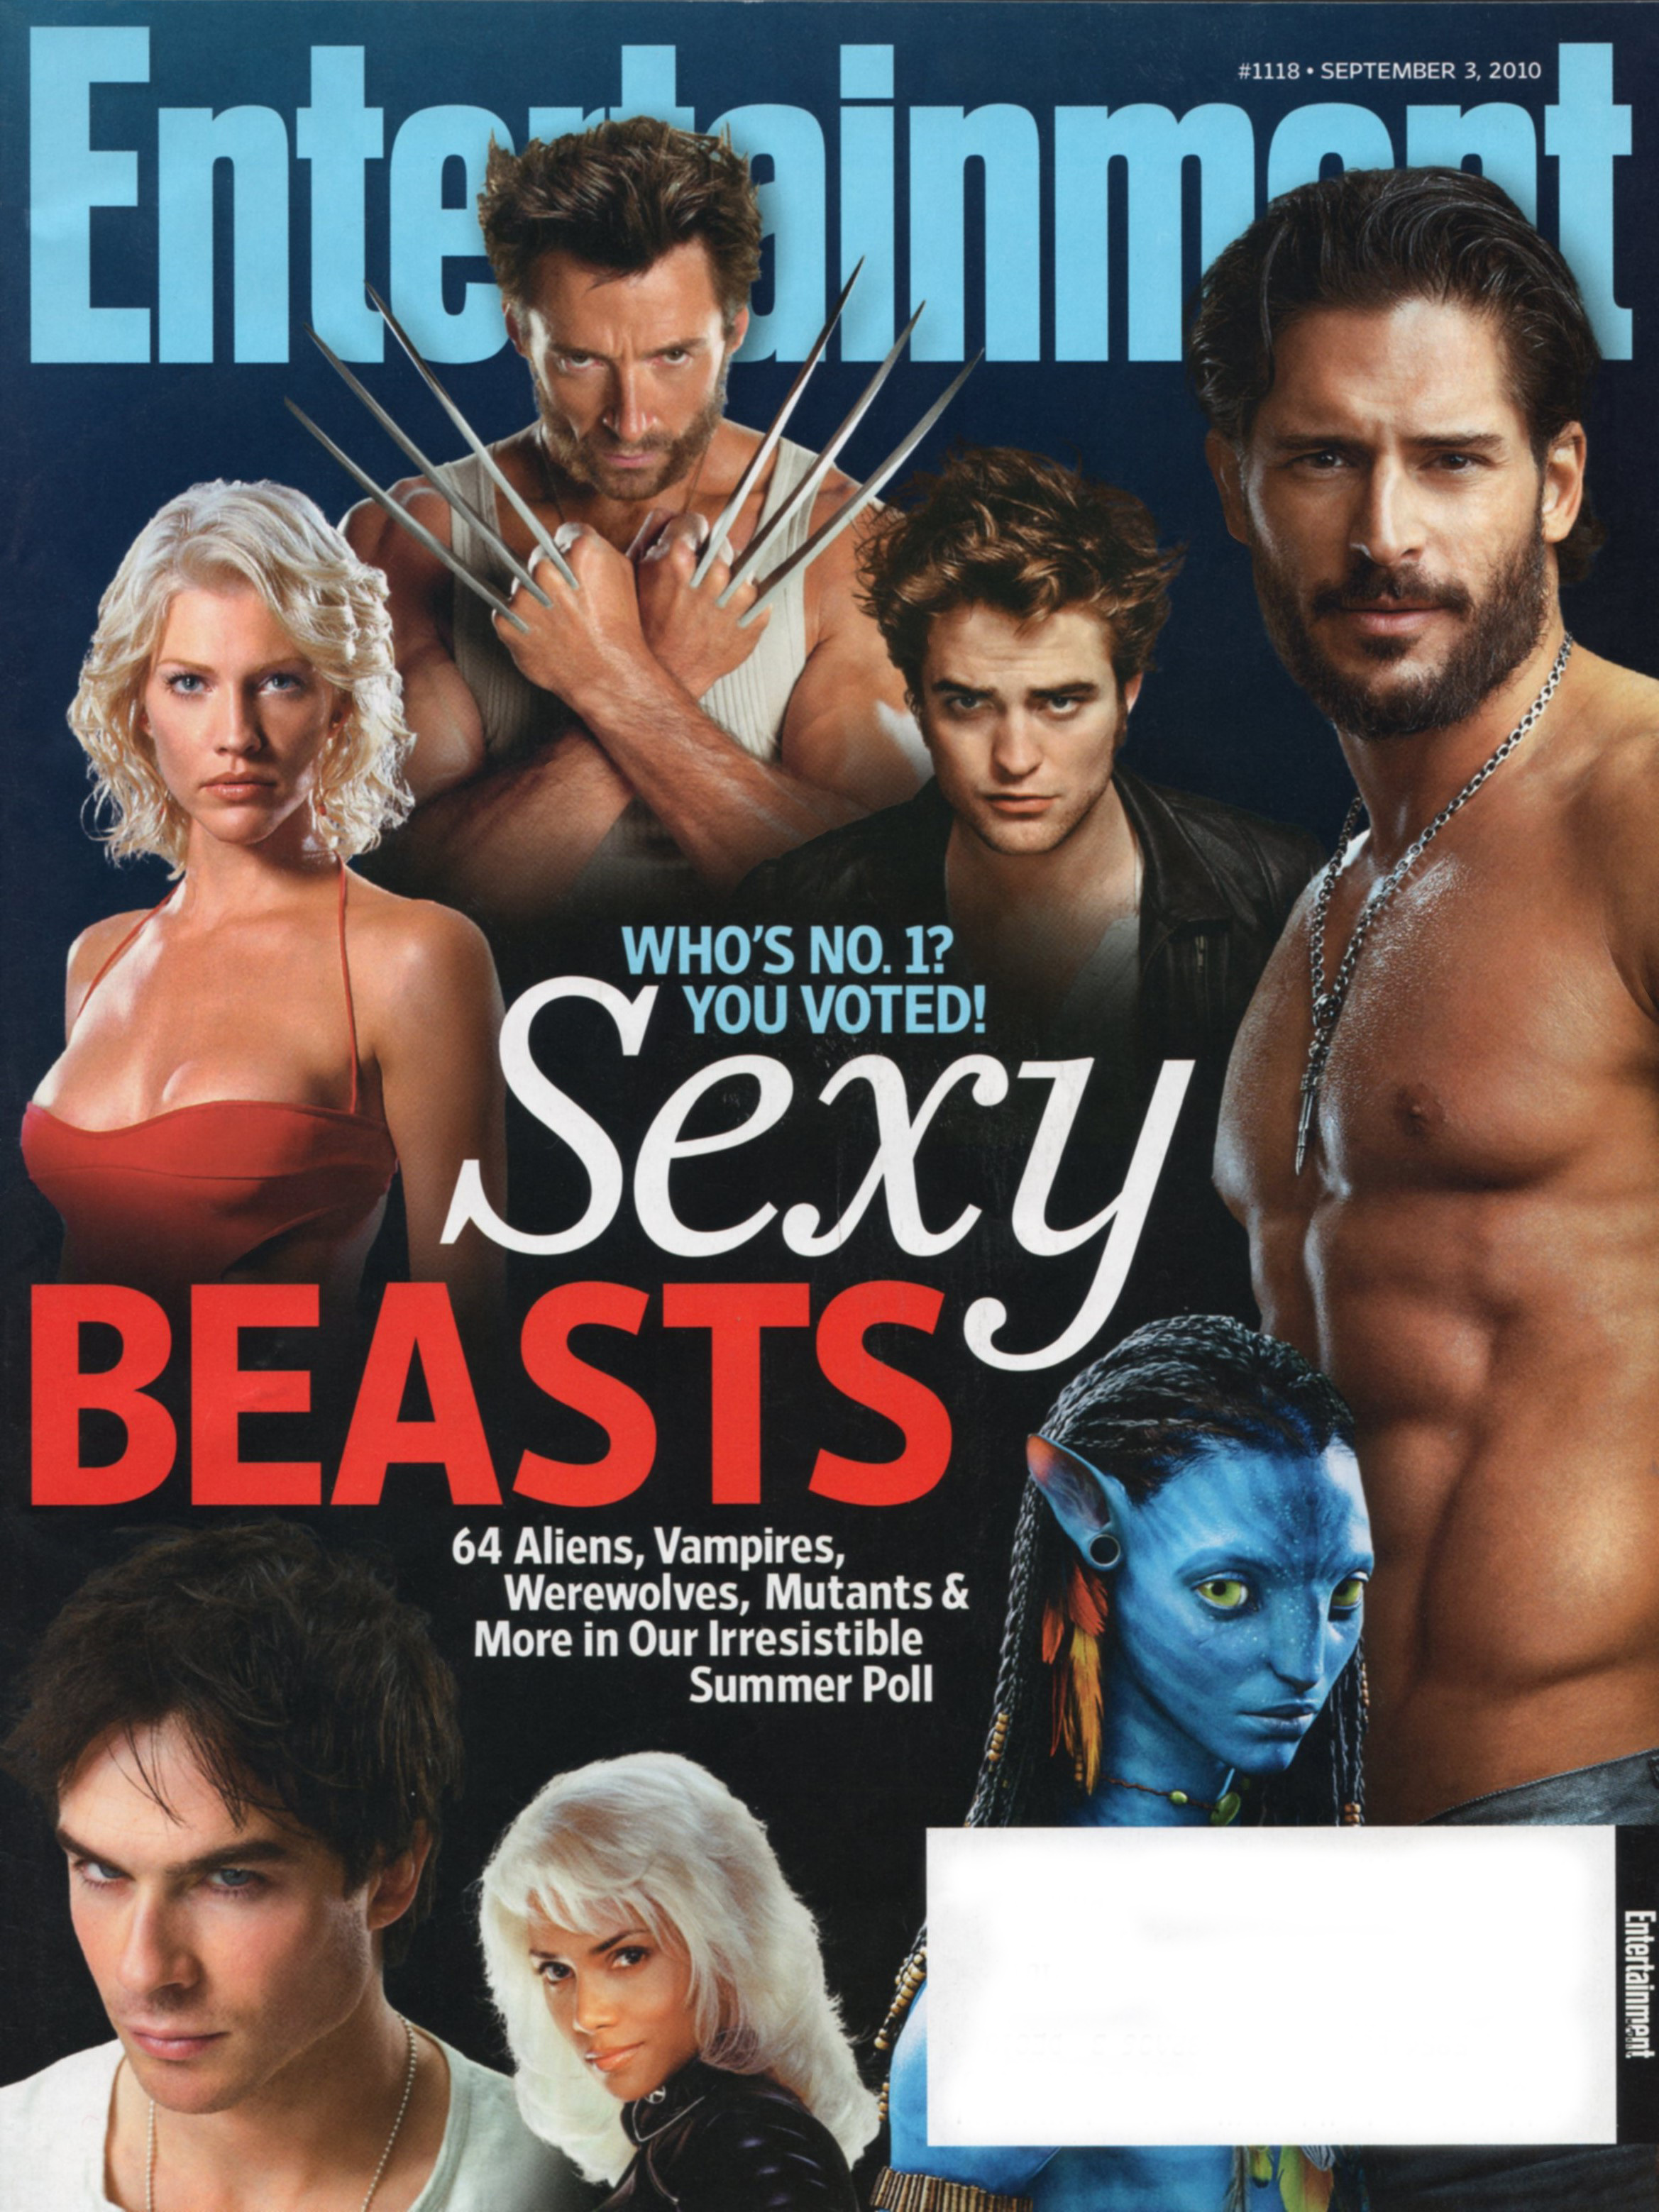 What is a sexy beast